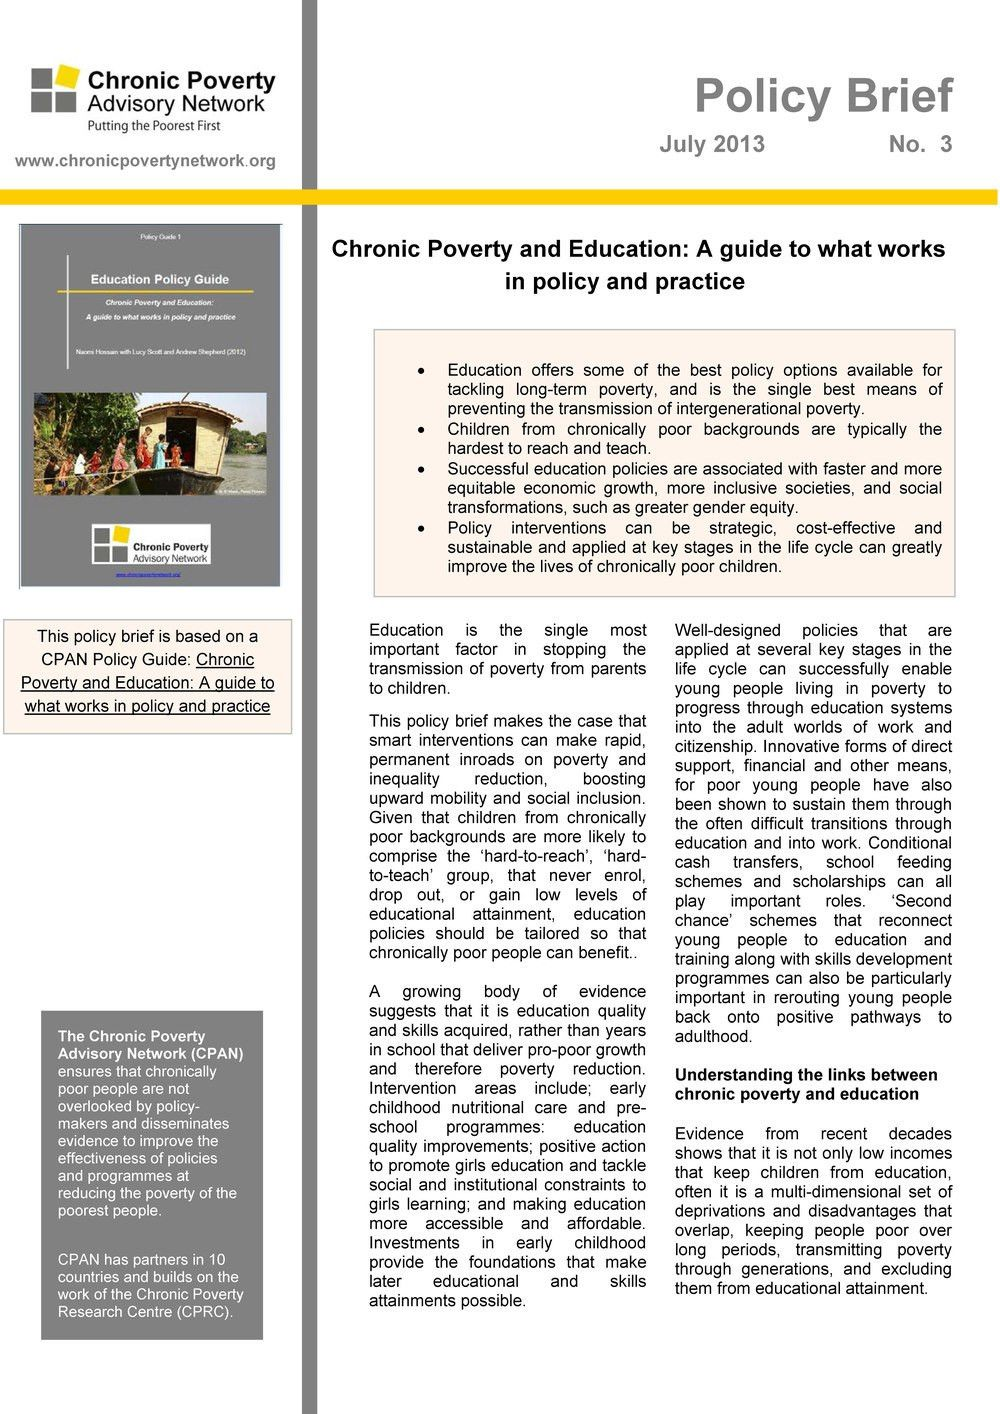 Education Policy Brief: A guide to what works in policy and ...